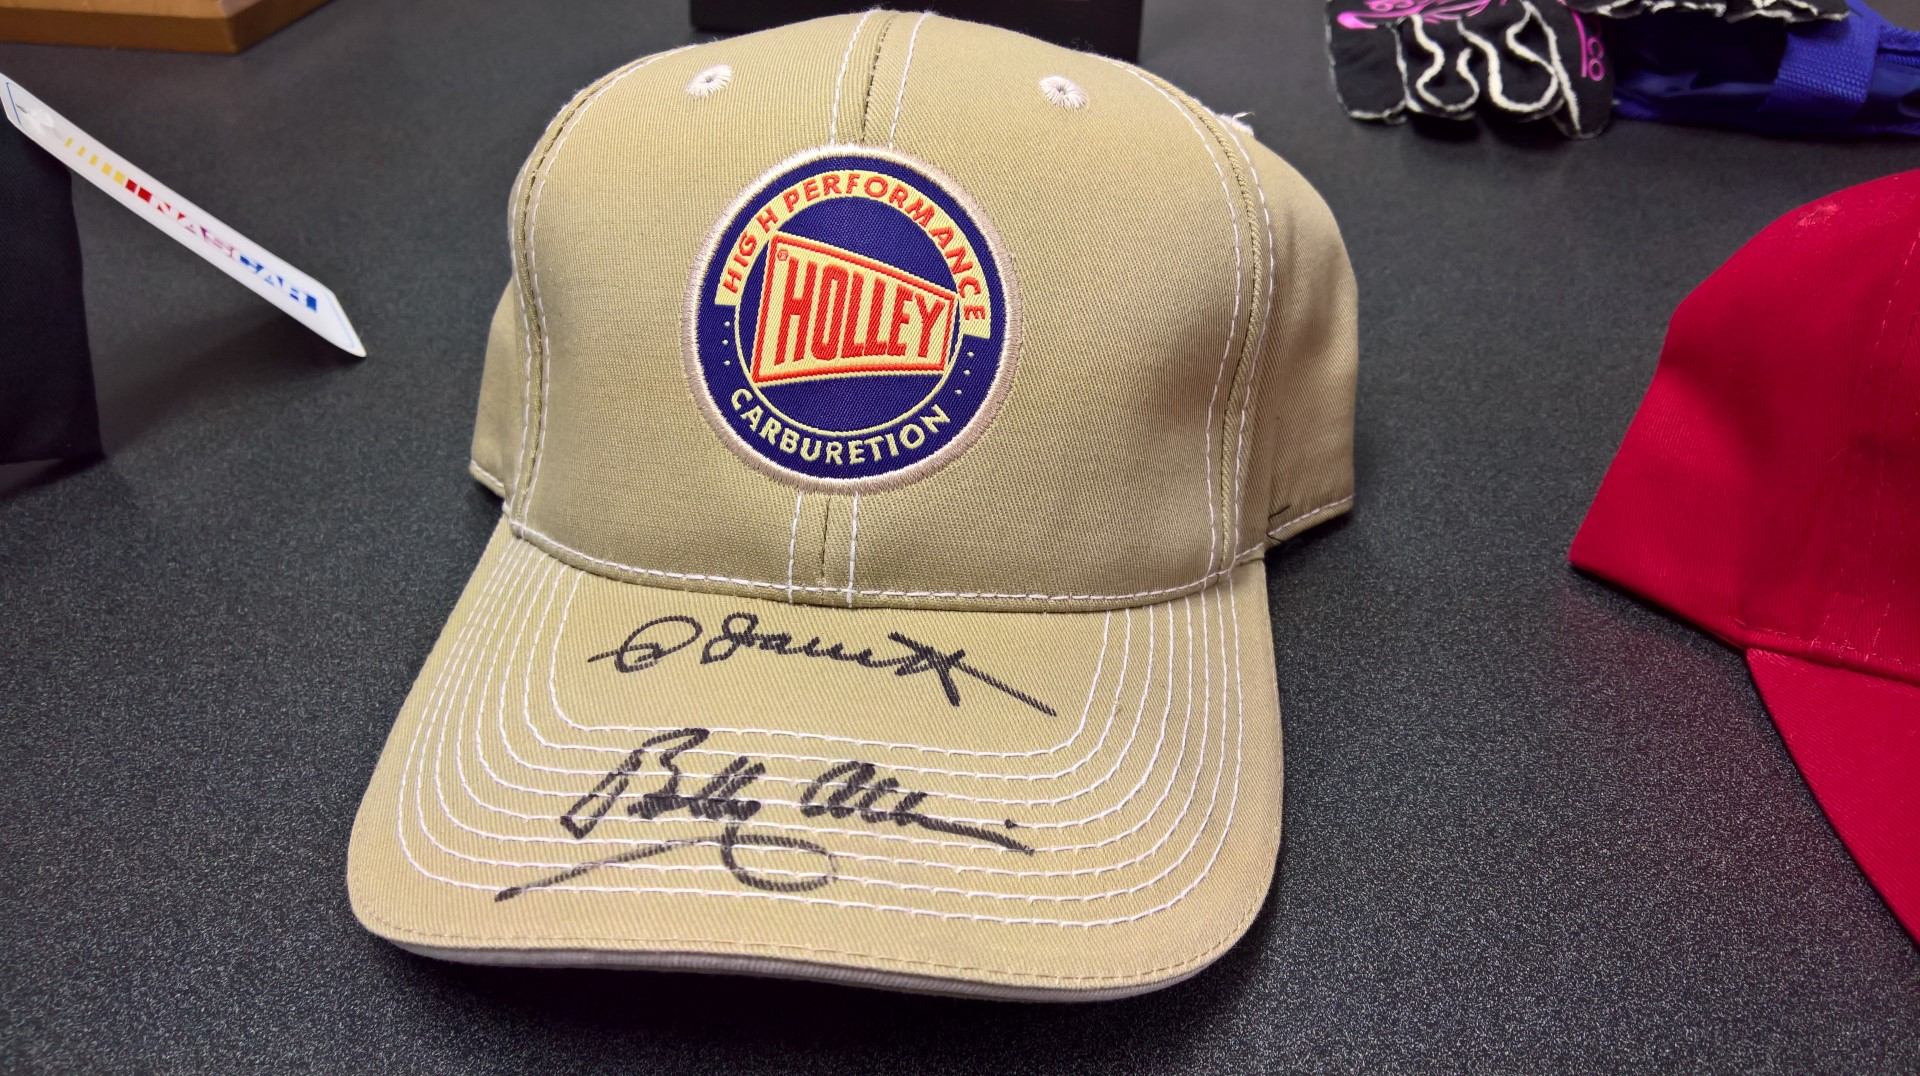 Signed Holley Carburetion Ball Cap